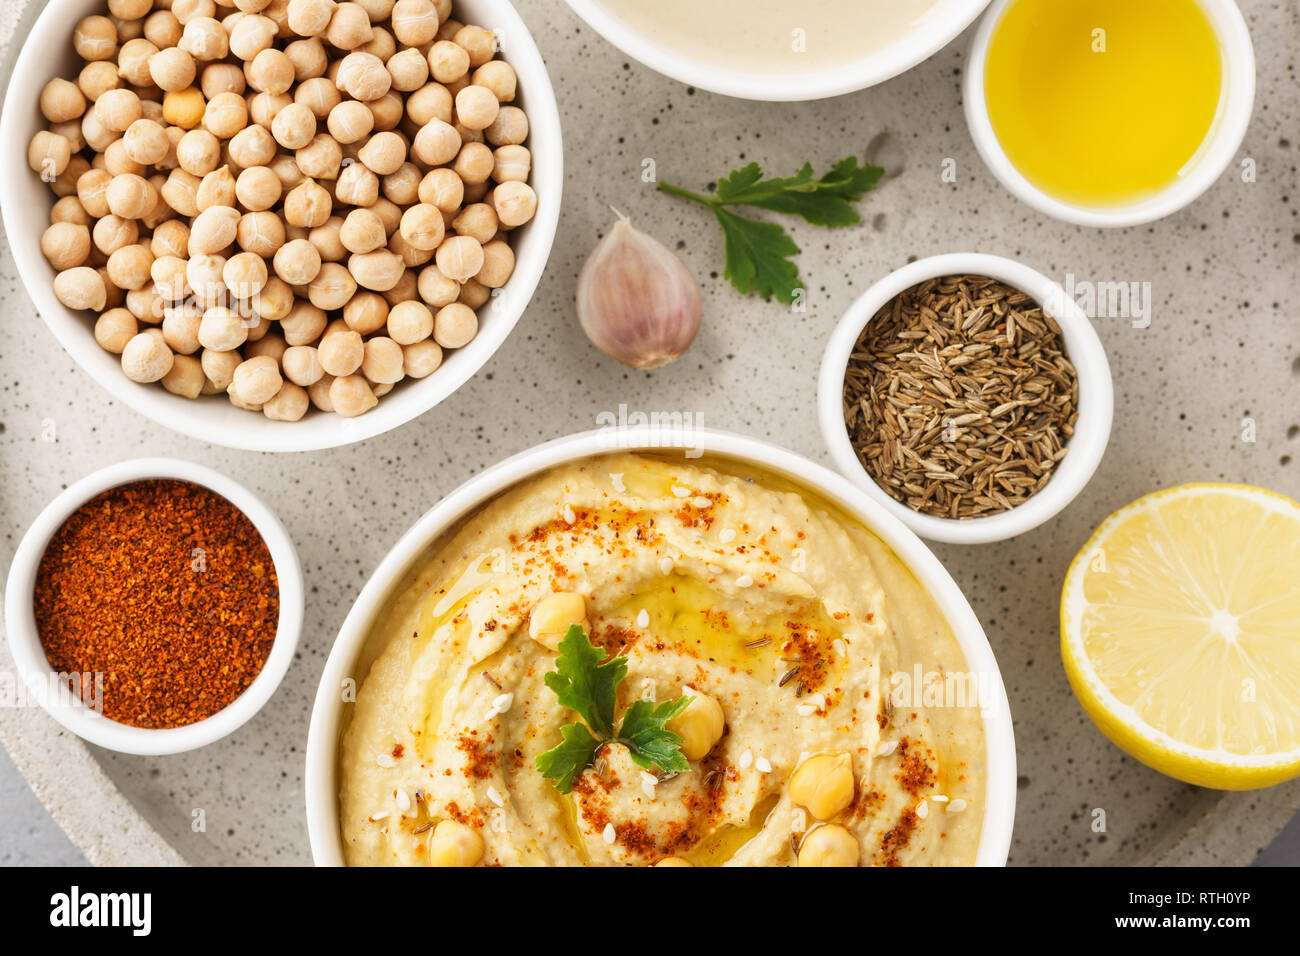 Hummus Bowl And Raw Ingredients For Cooking Middle Eastern